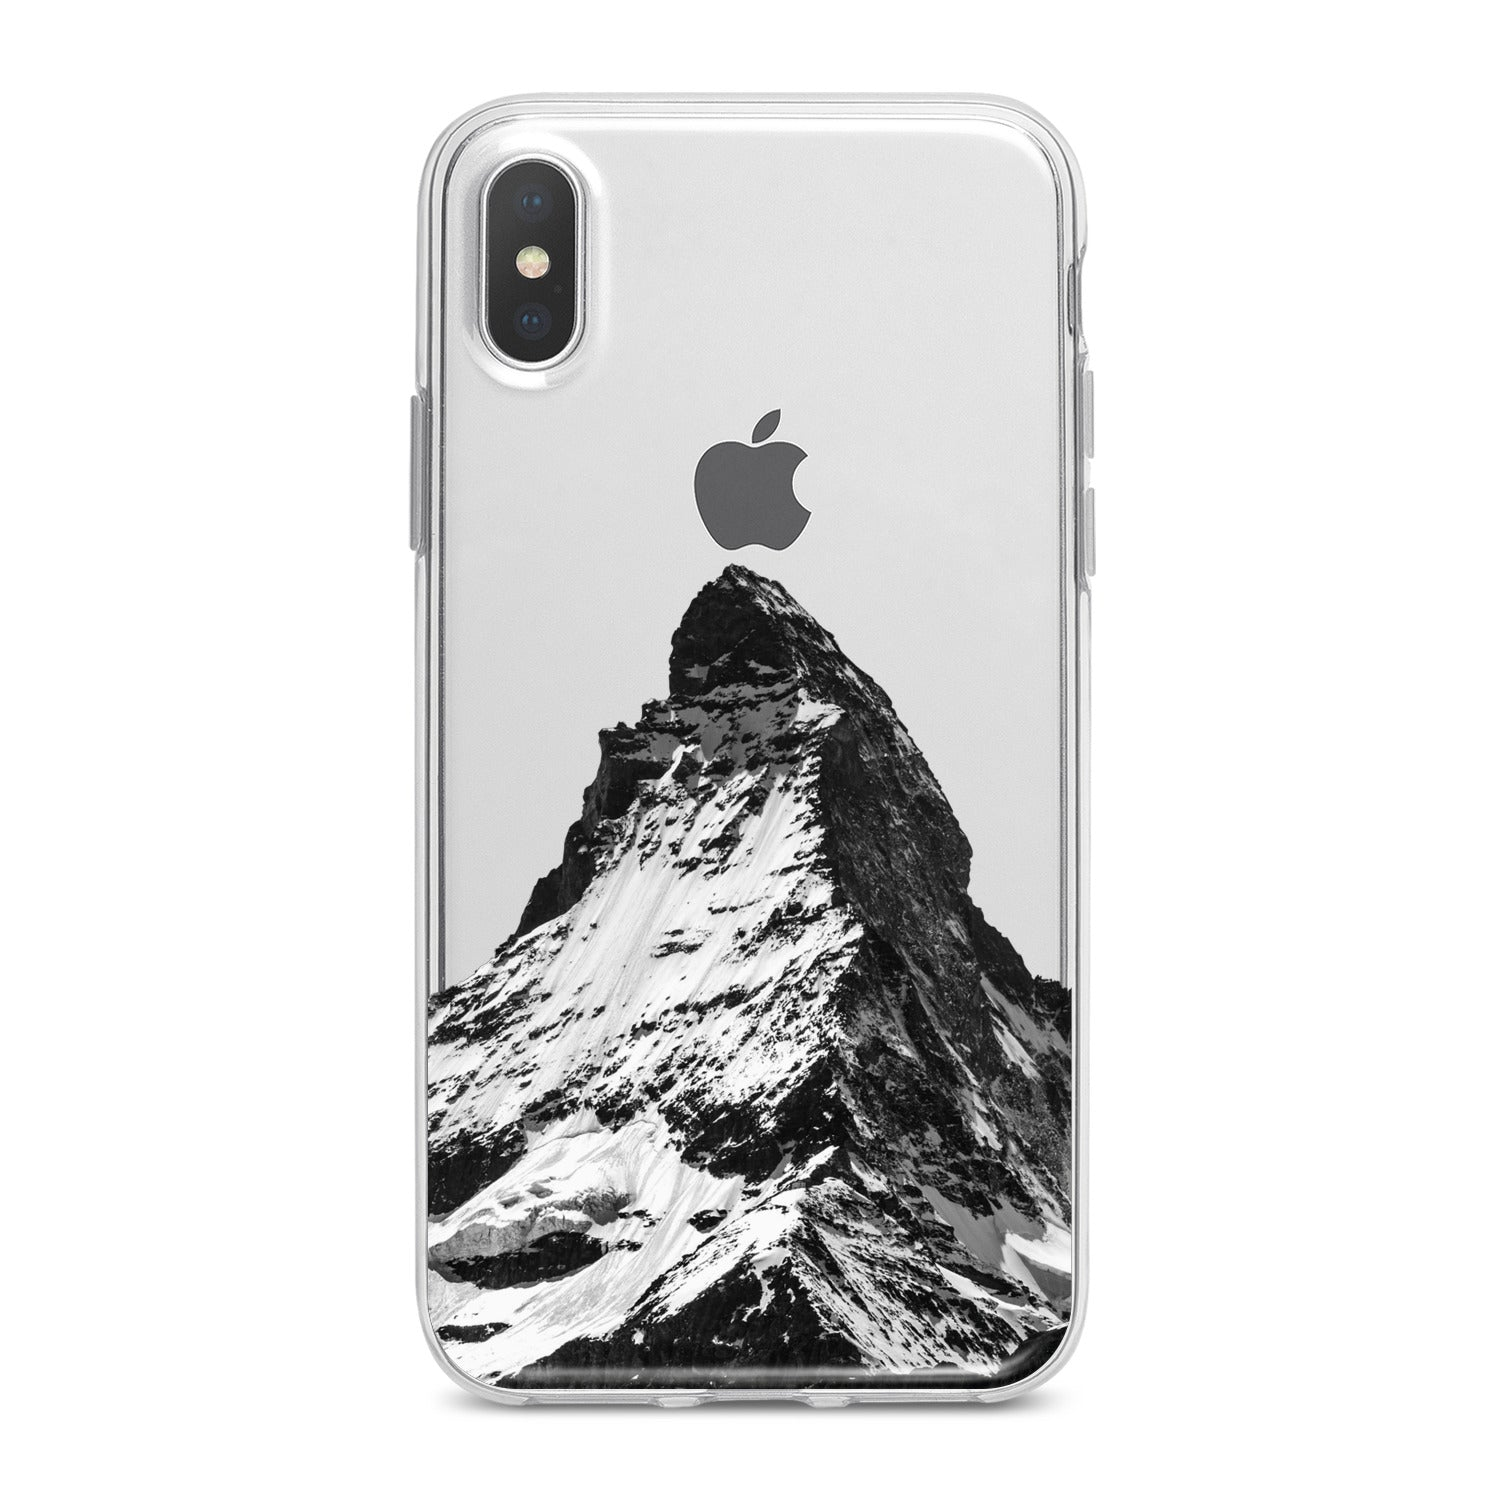 Lex Altern Snowy Mountain Phone Case for your iPhone & Android phone.